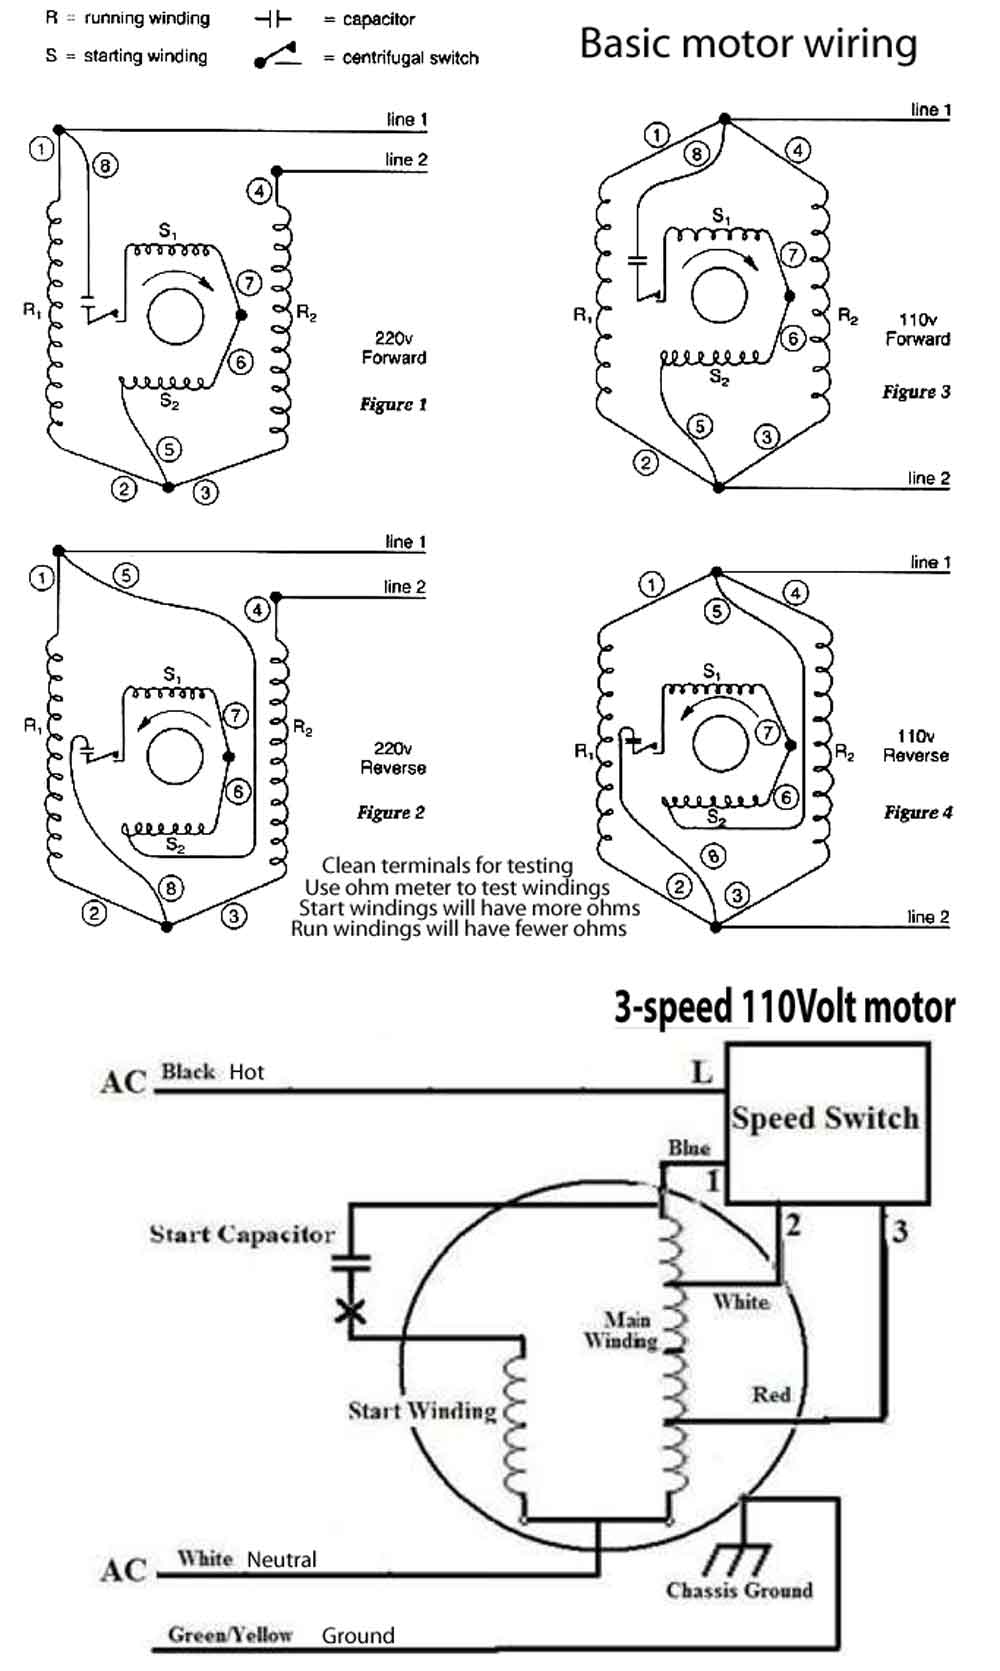 2 Wire Ceiling Fan Capacitor Wiring Diagram